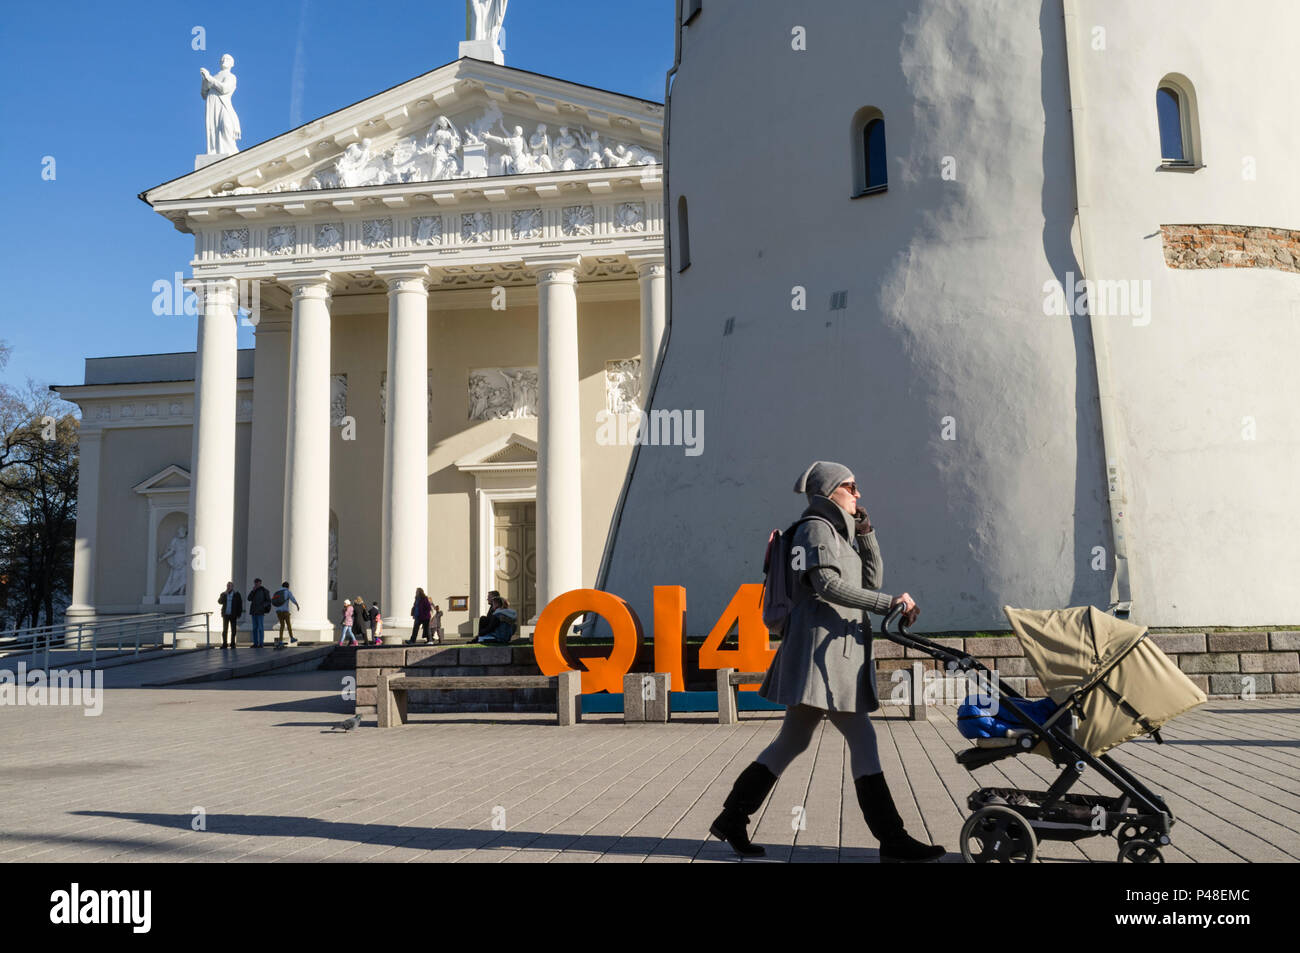 People at Cathedral Square, Vilnius, Lithuania, Europe - Stock Image